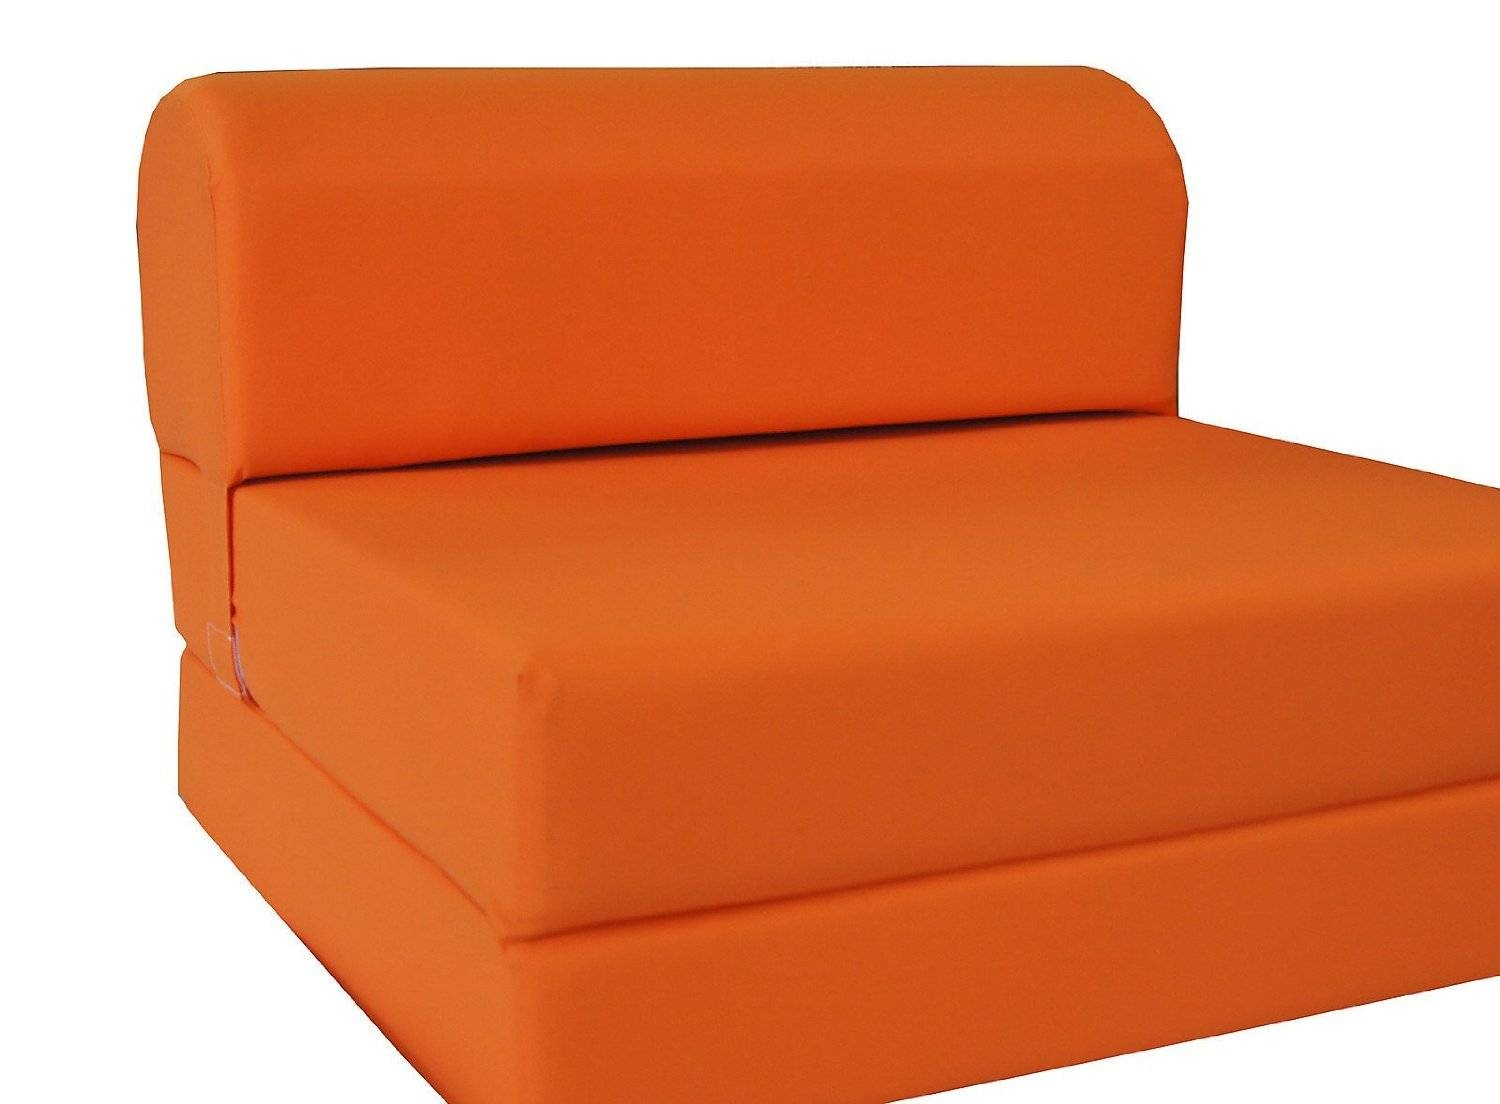 Foam For Couch Cushions Canada | Cushions Decoration pertaining to Folding Sofa Chairs (Image 11 of 30)